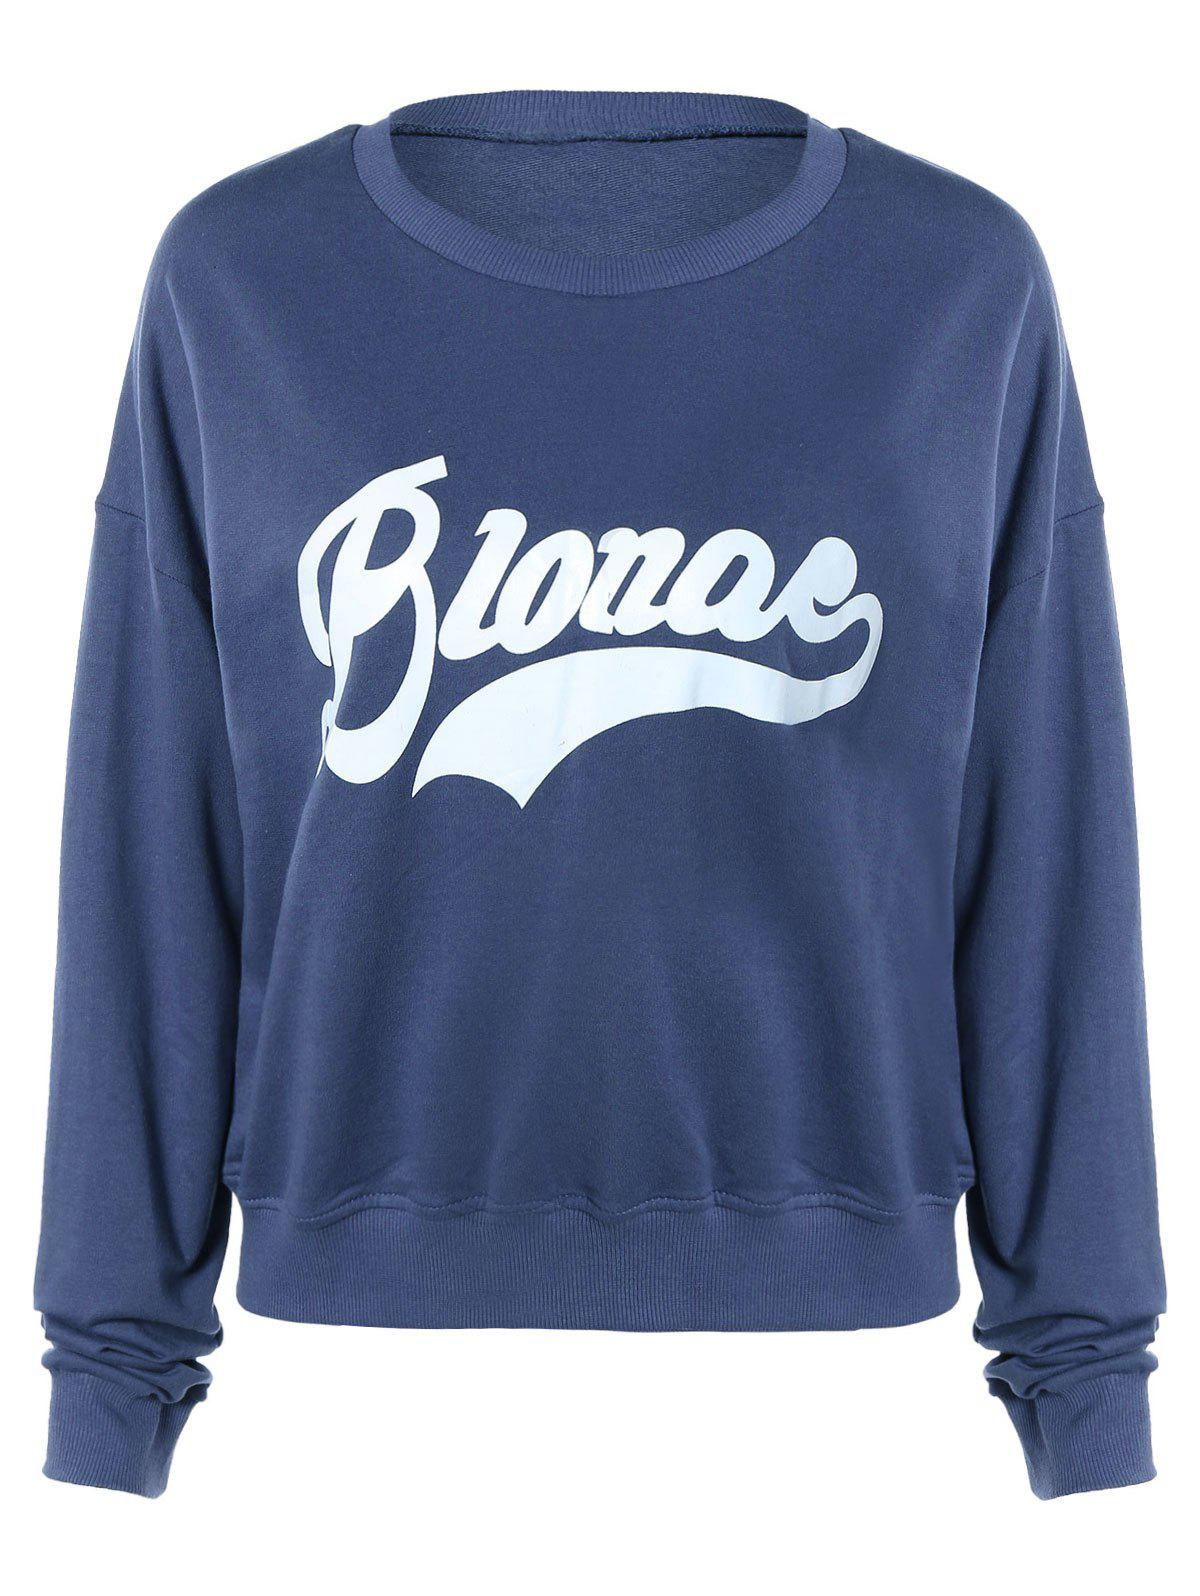 Brief Letter Print Pullover Sweatshirt For Women